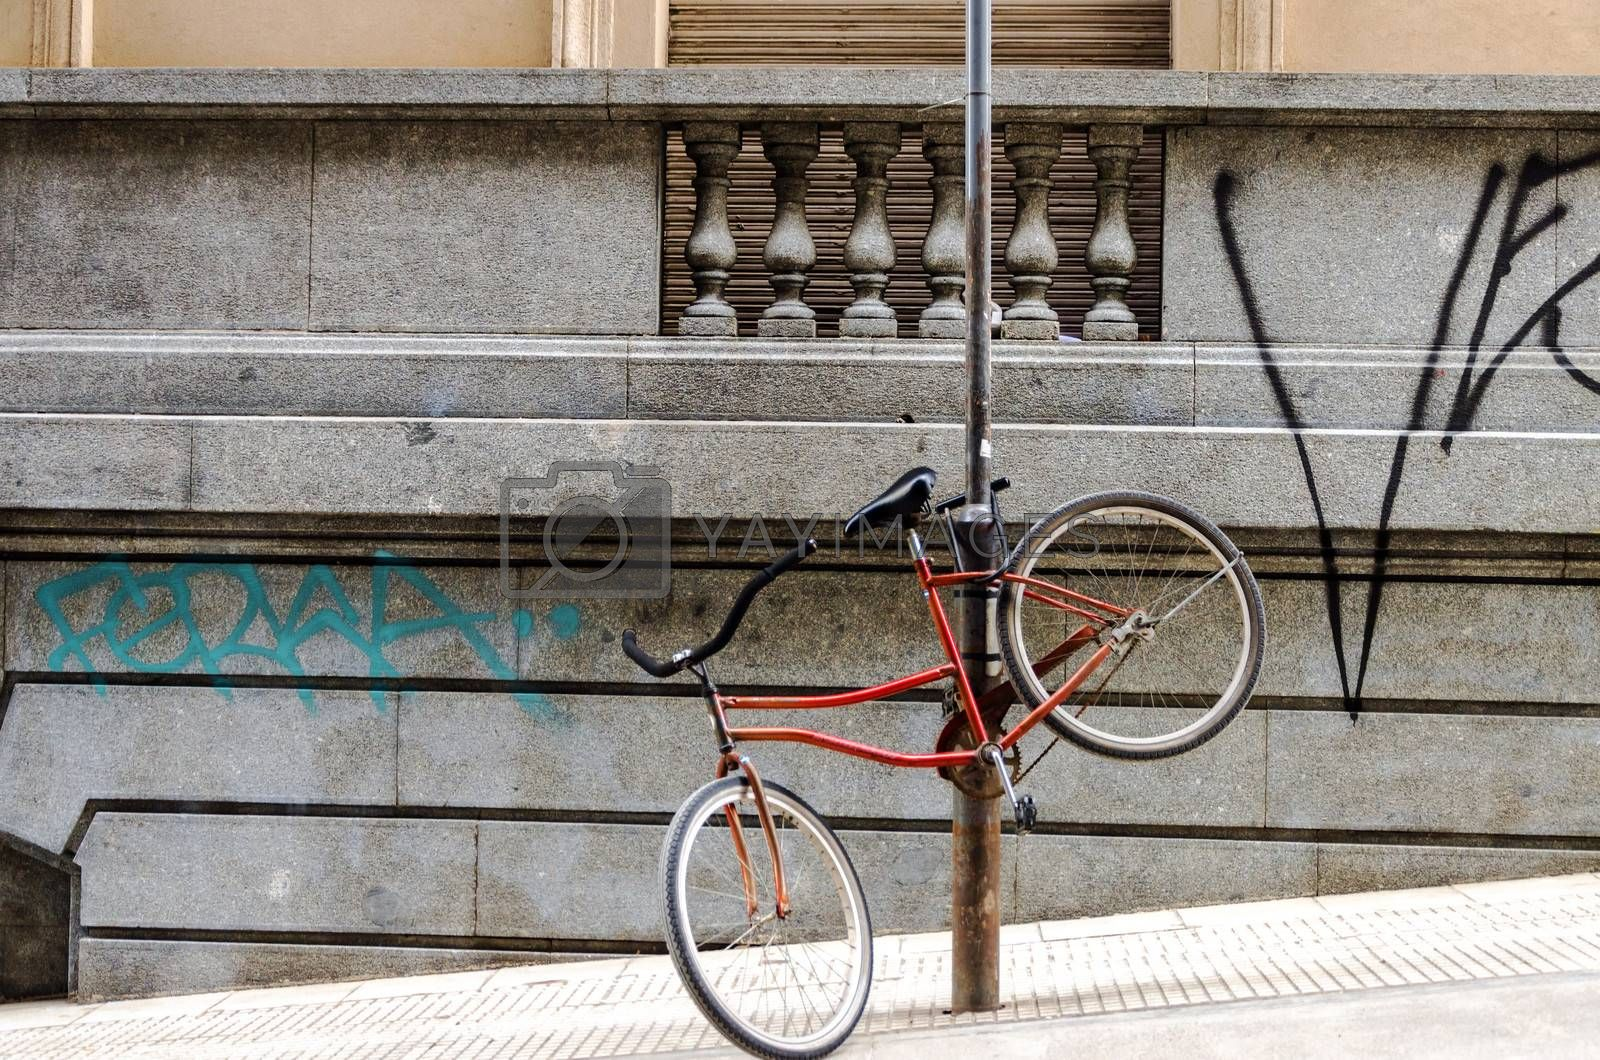 Red bicycle chained to a post in an urban setting